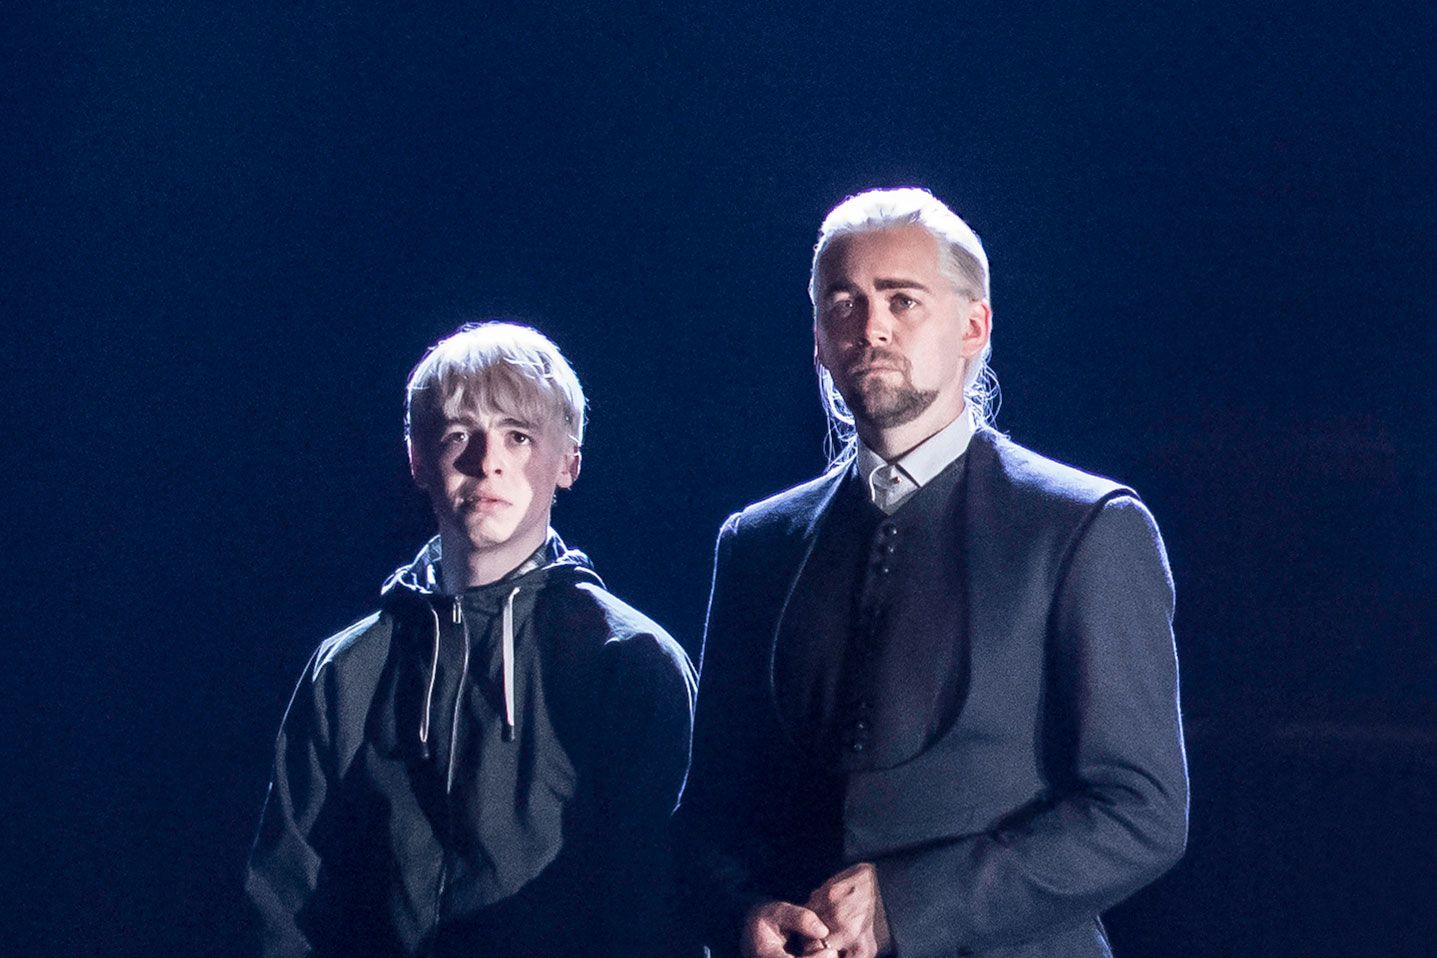 Harry Potter and the Cursed Child, Draco Malfoy, Scorpius Malfoy